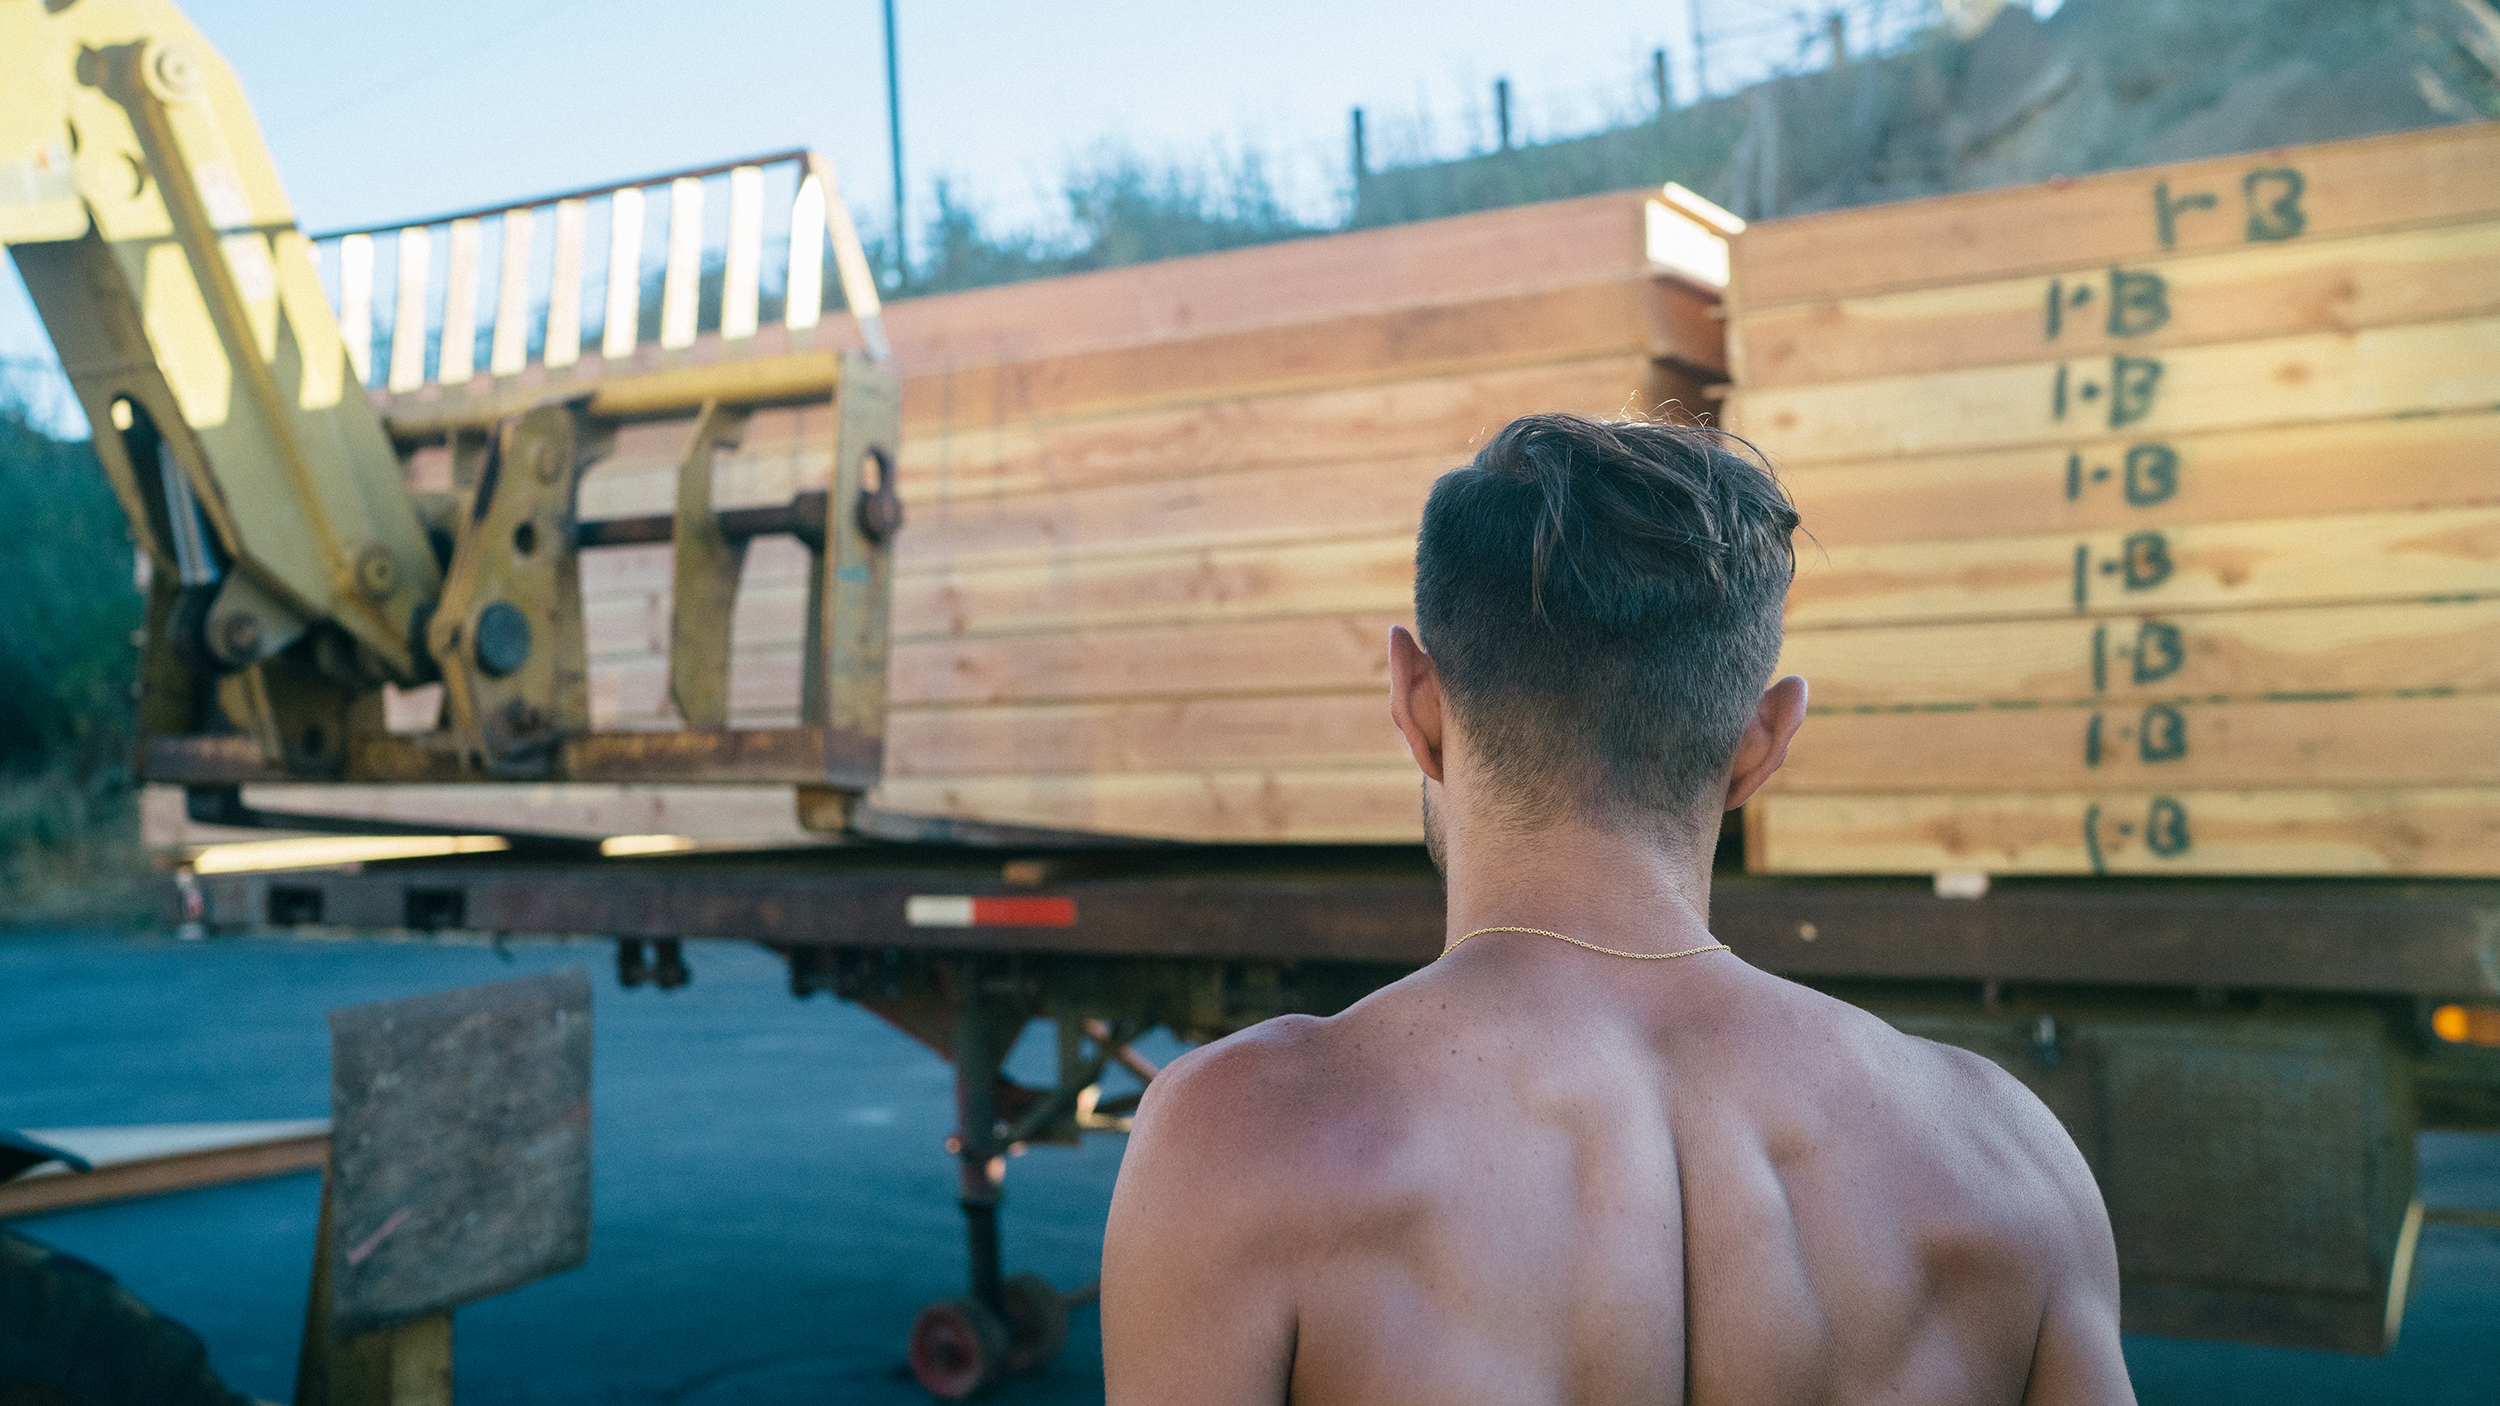 Loading the first shipment for the Playa for Catacomb of Veils. Photo by Afonso Salcedo.